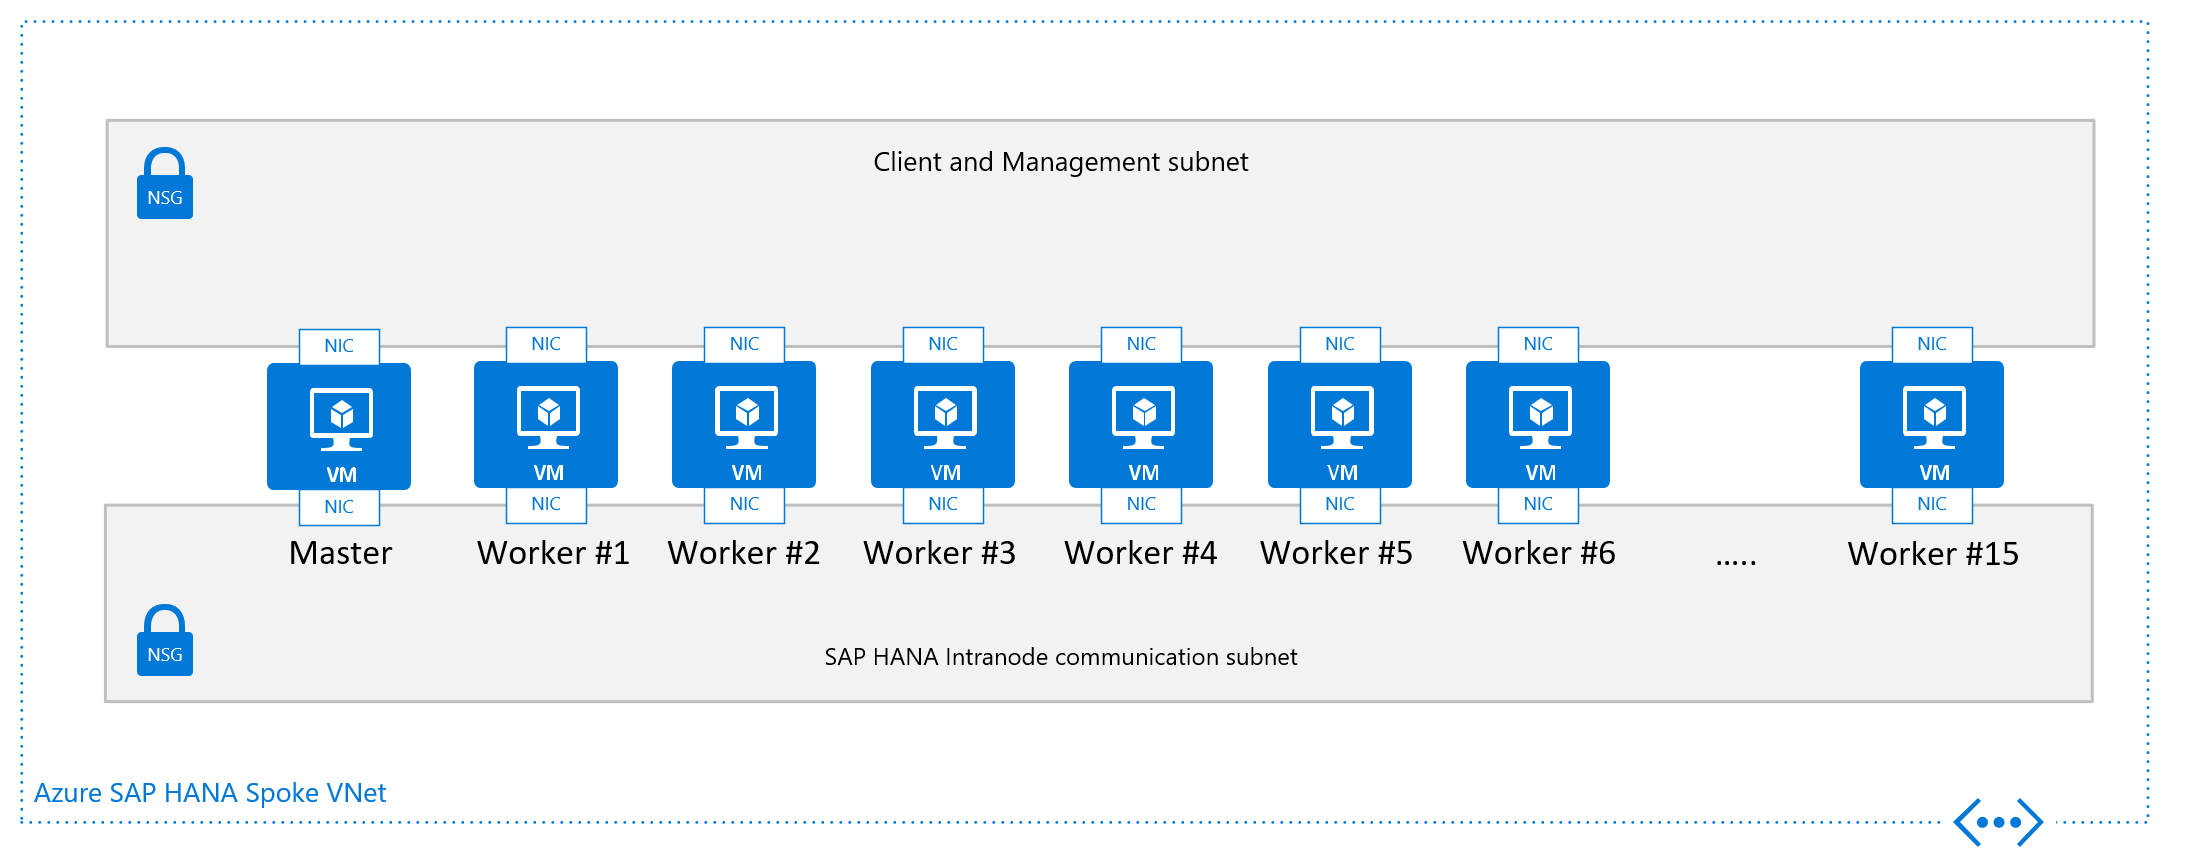 SAP HANA infrastructure configurations and operations on Azure